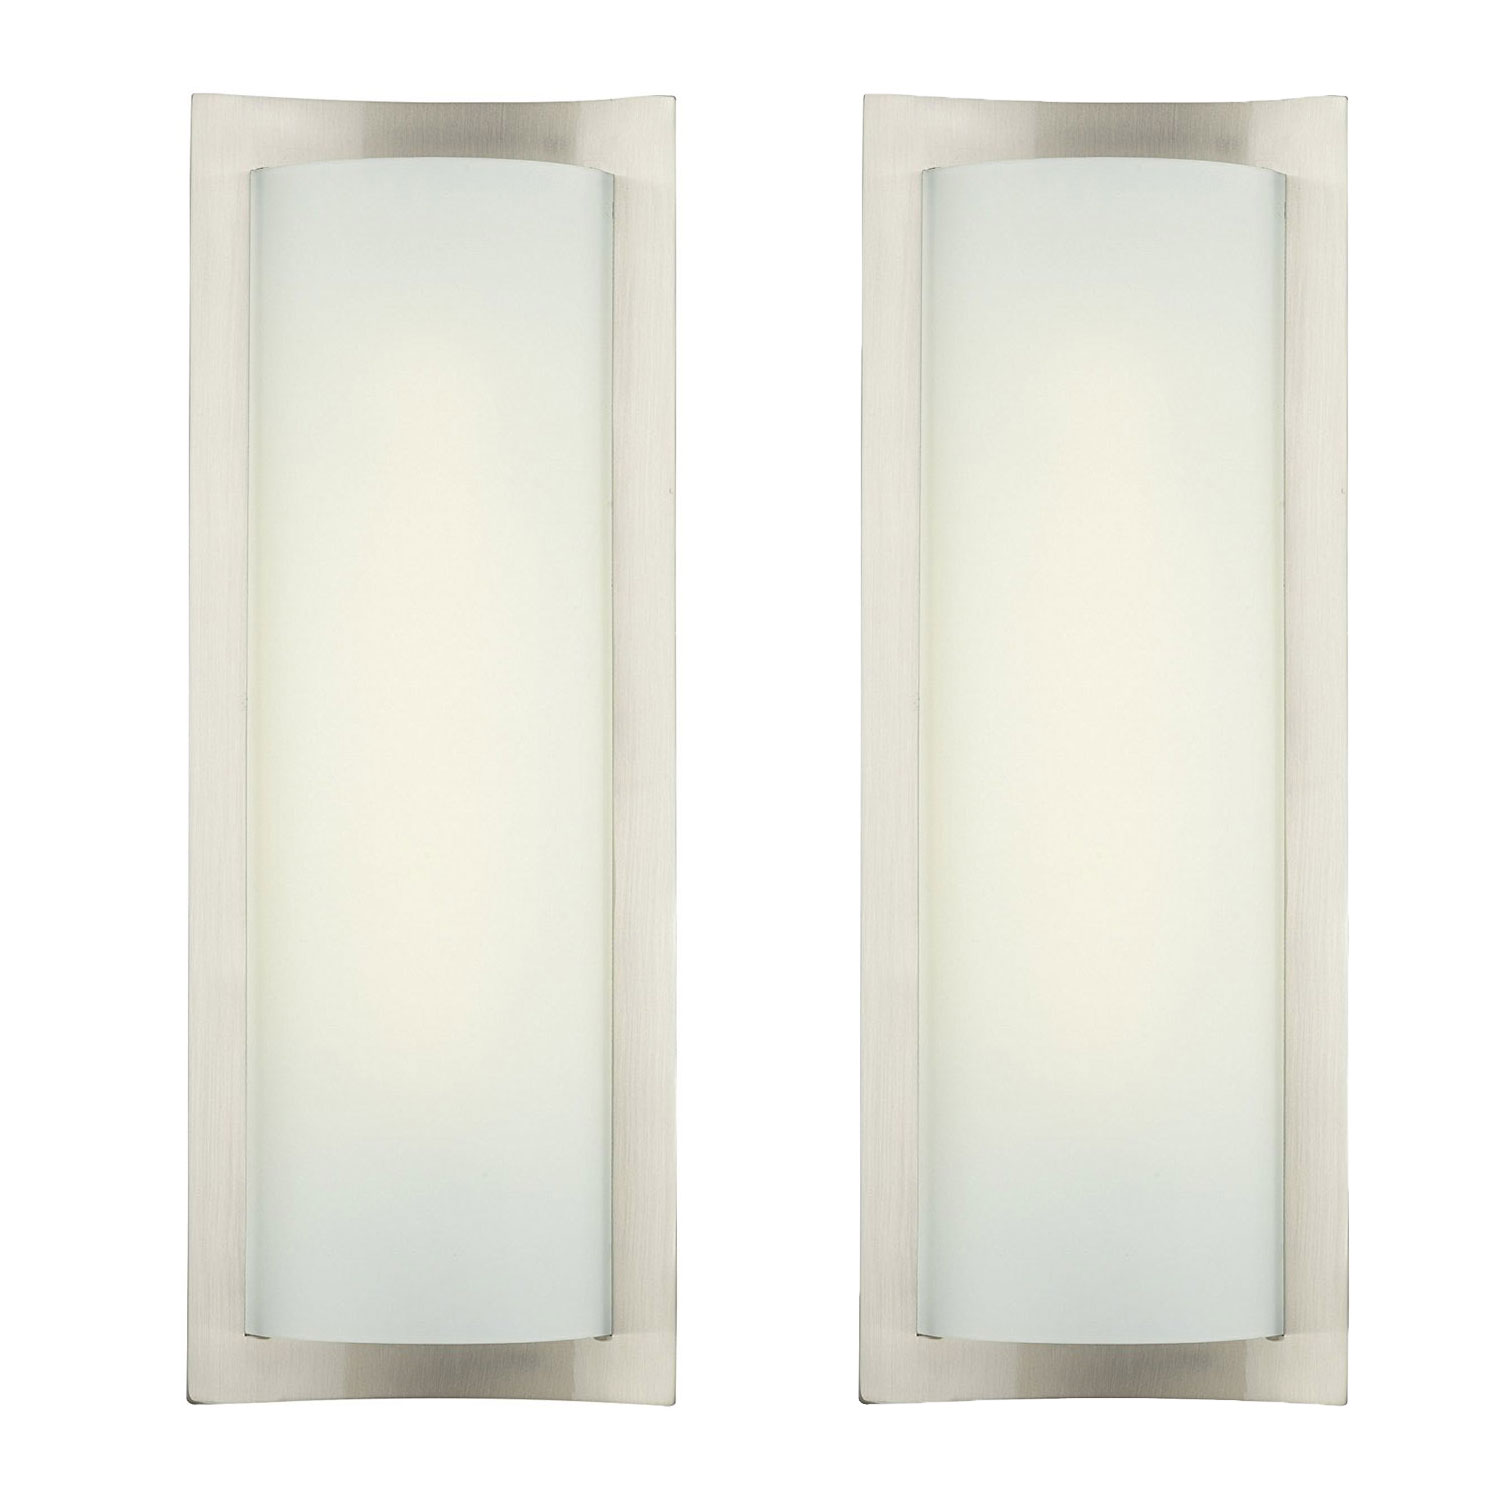 Details About Philips Forecast 24w 120v Bow Wrap Modern Bathroom Wall Light Nickel 2 Pack